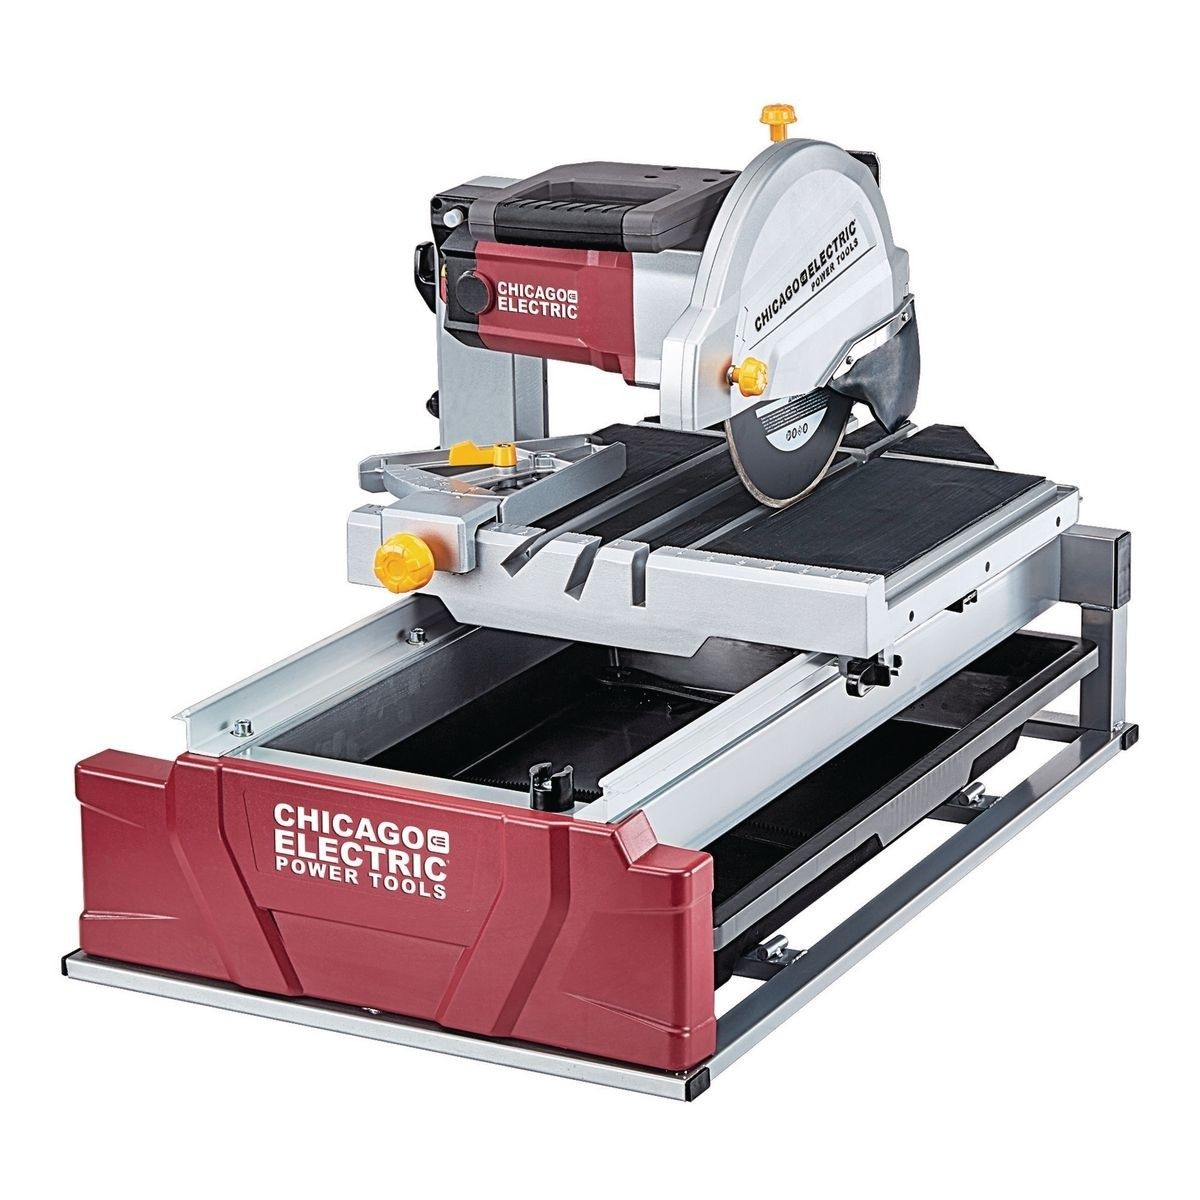 Buy This 2 5 Hp 10 In Industrial Tile Brick Saw For Only 229 99